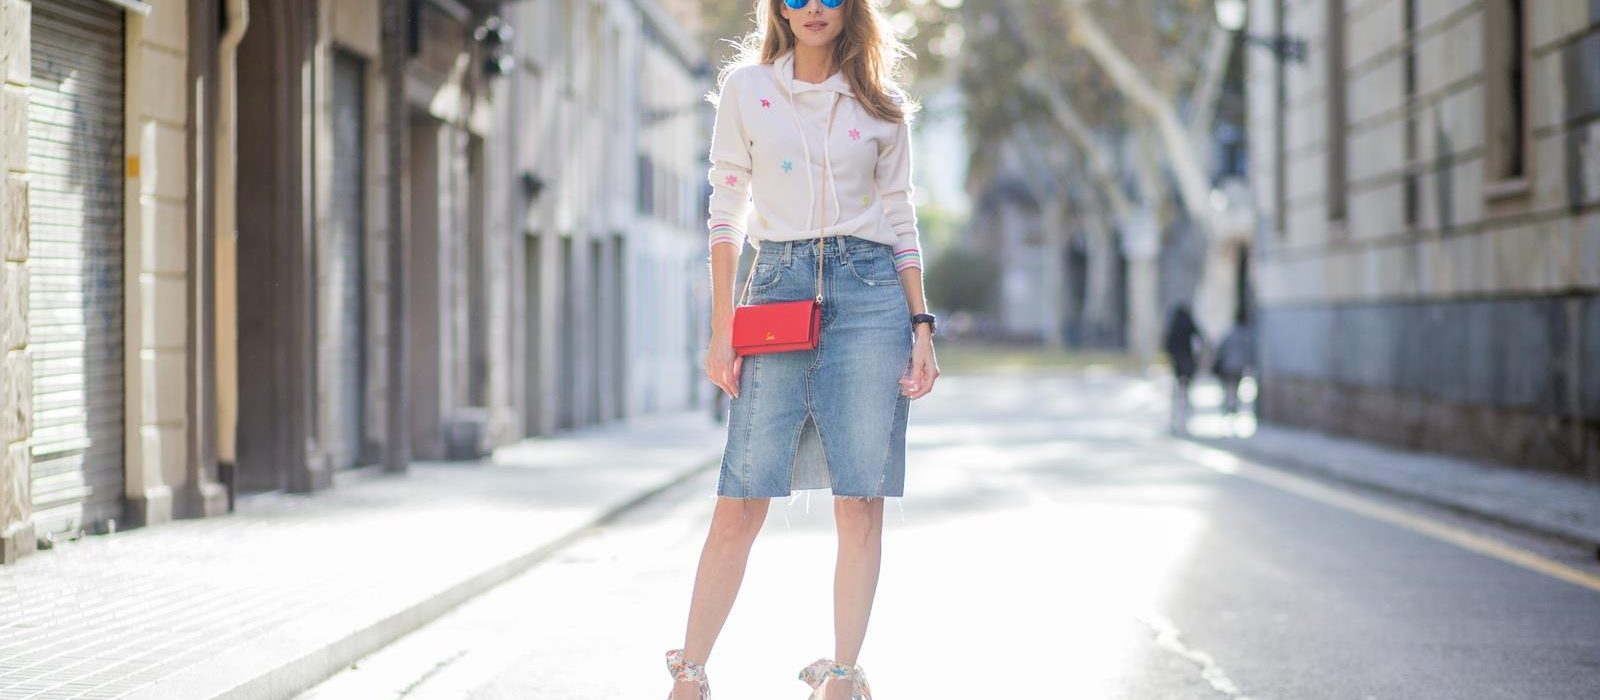 How to wear the denim skirt